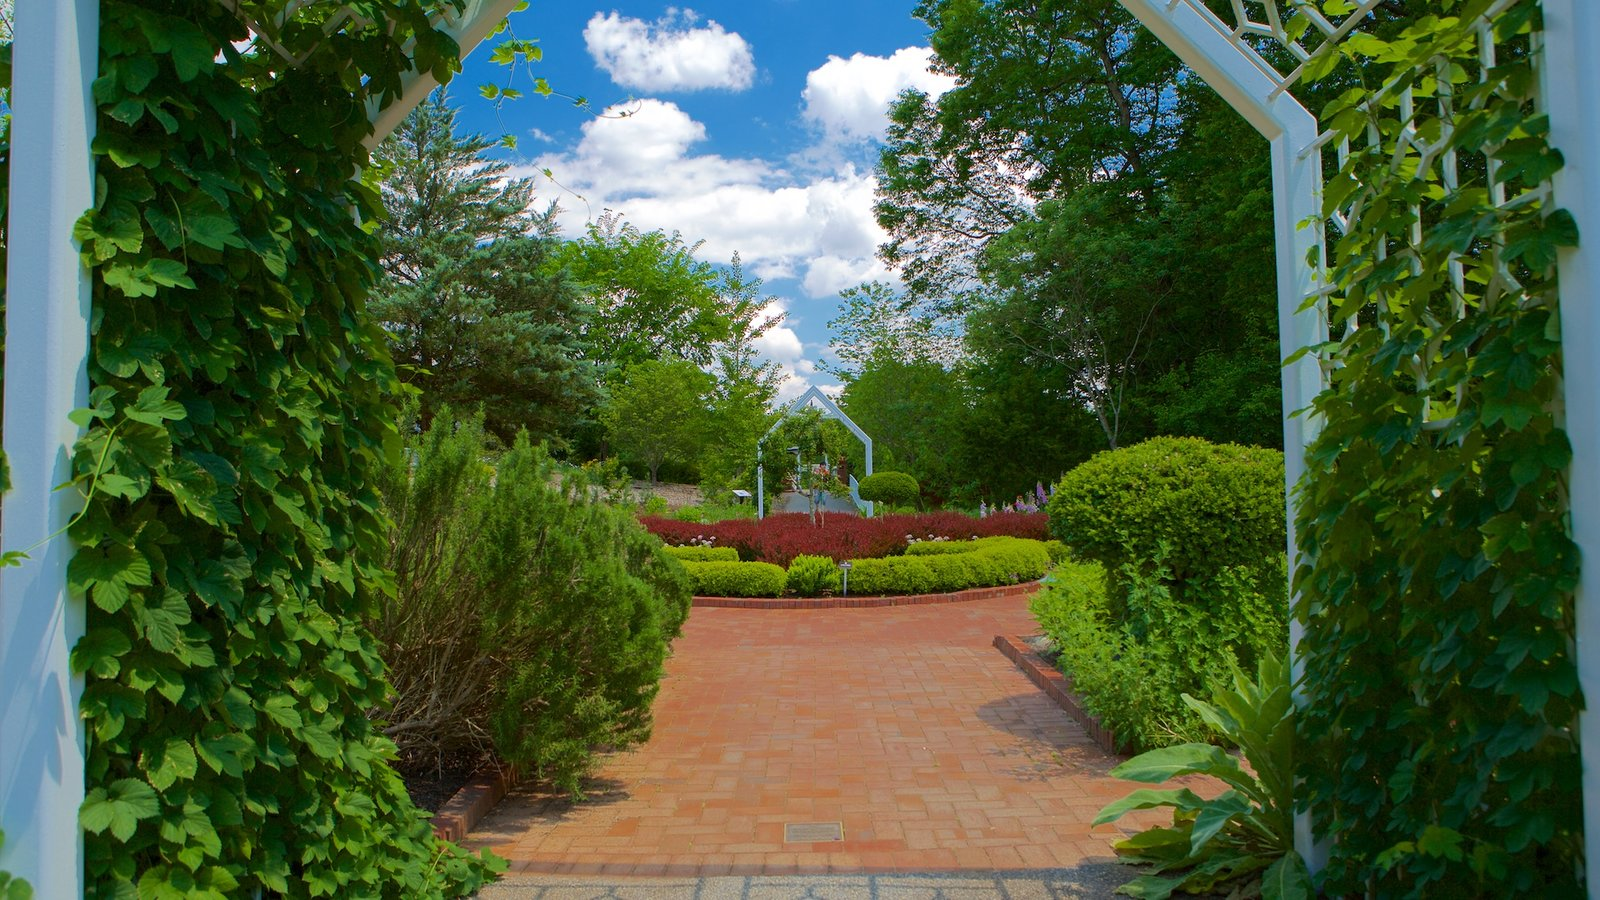 state botanical garden of pictures view photos images of state botanical garden of